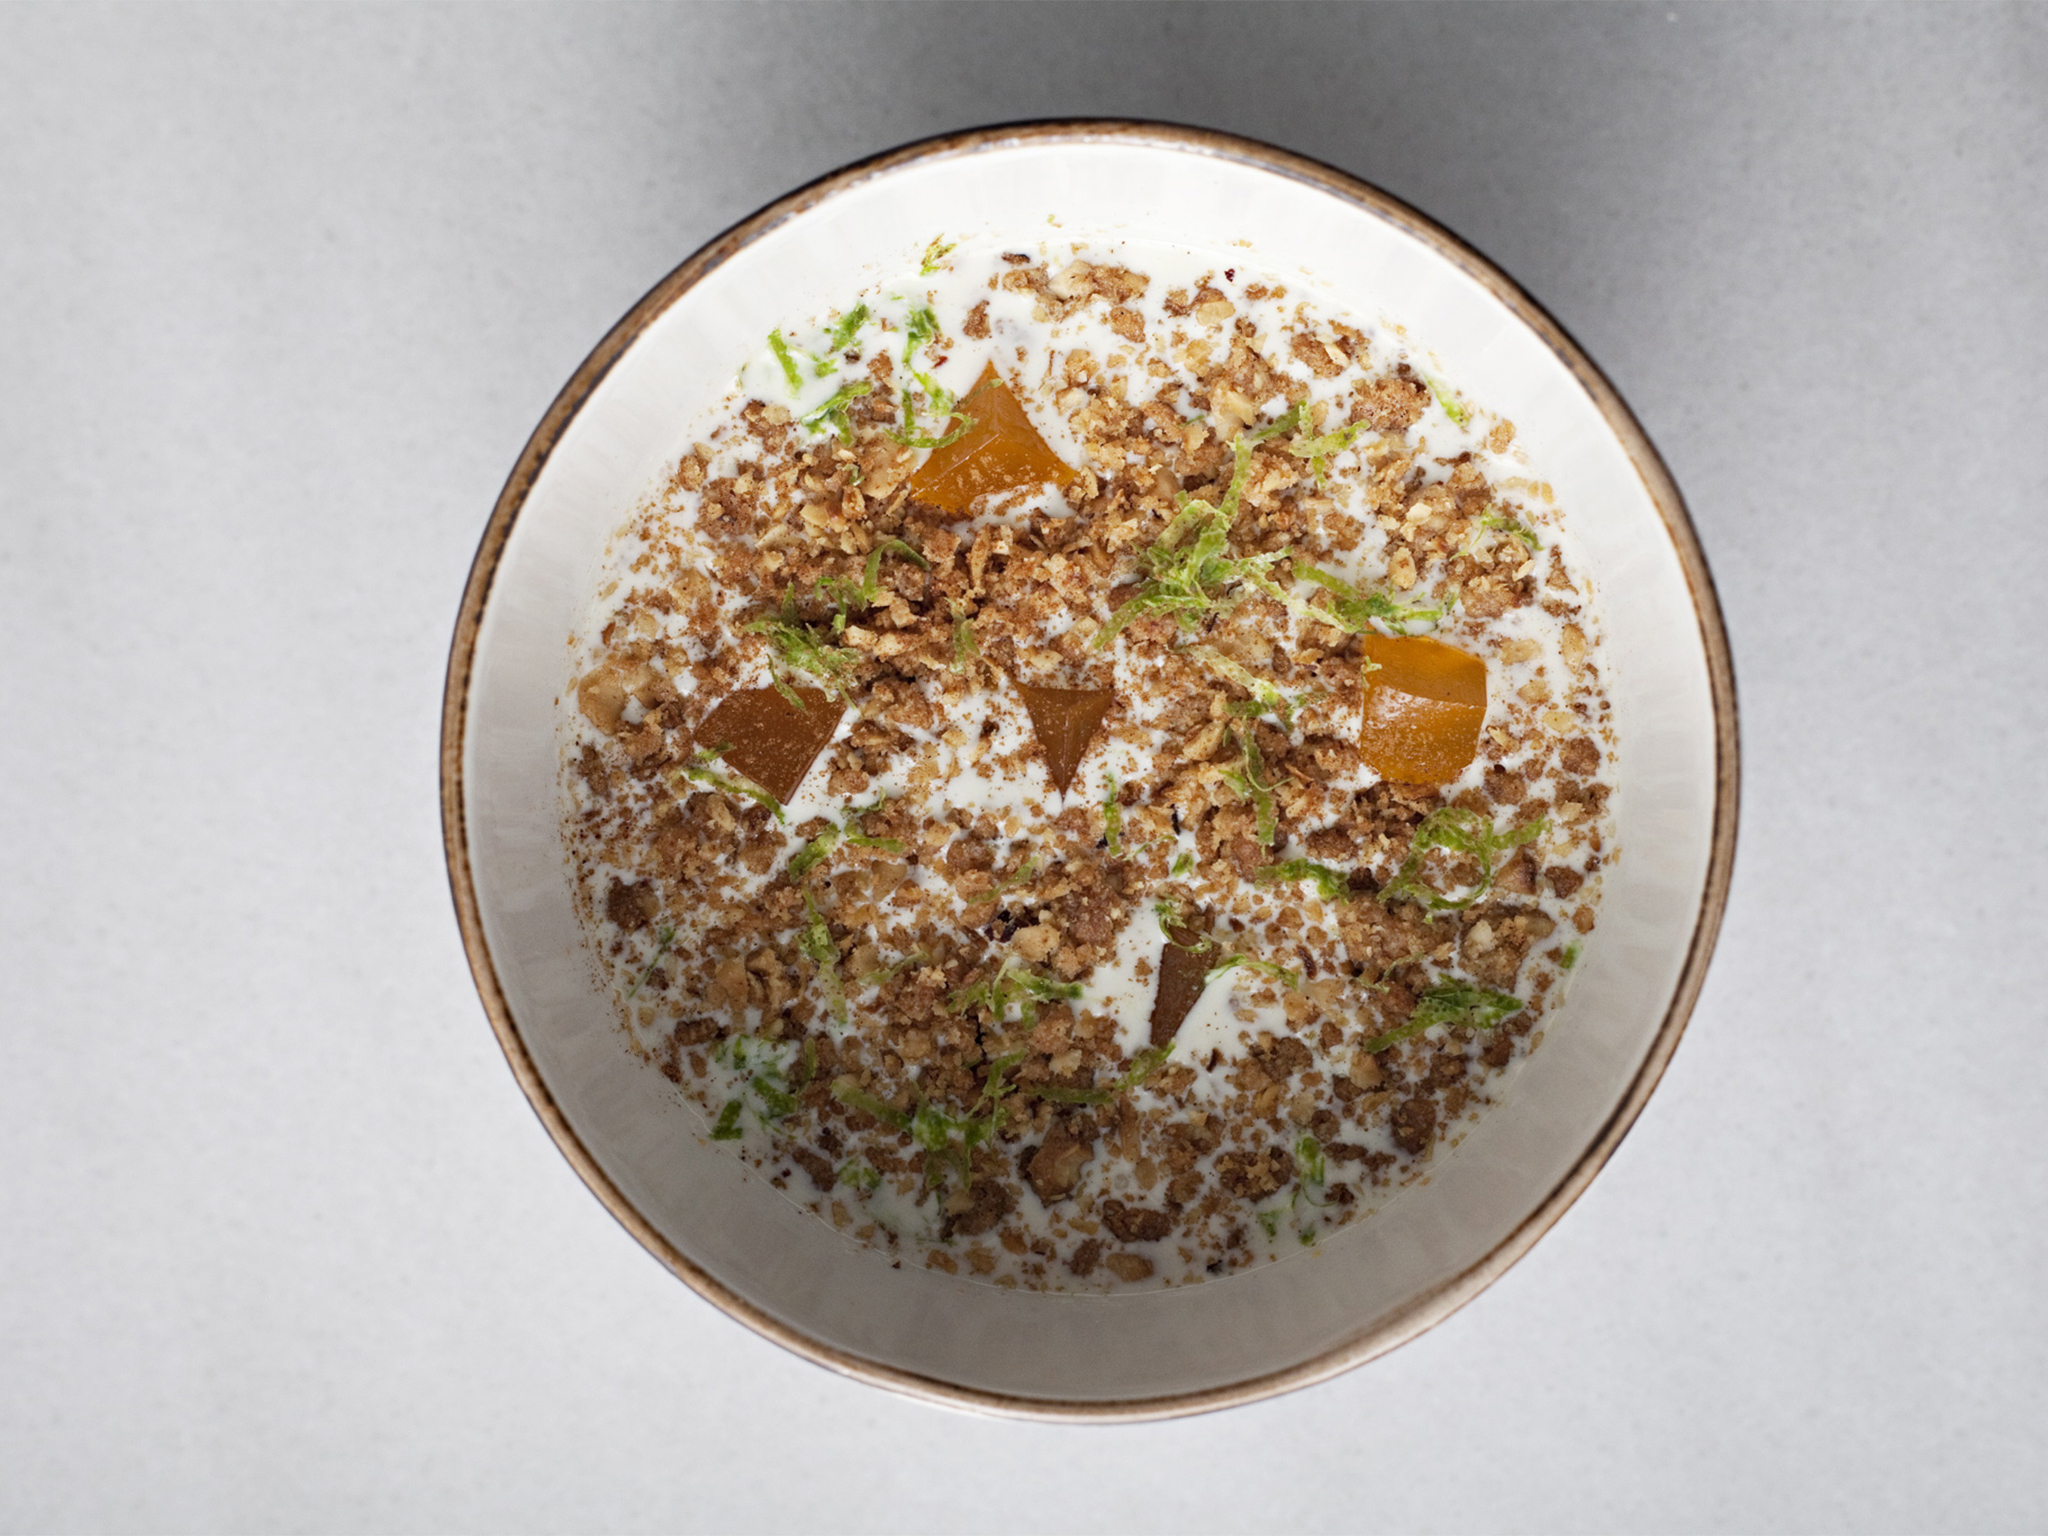 The exotic puddingy one: rice porridge infused with Earl Grey tea at Opso